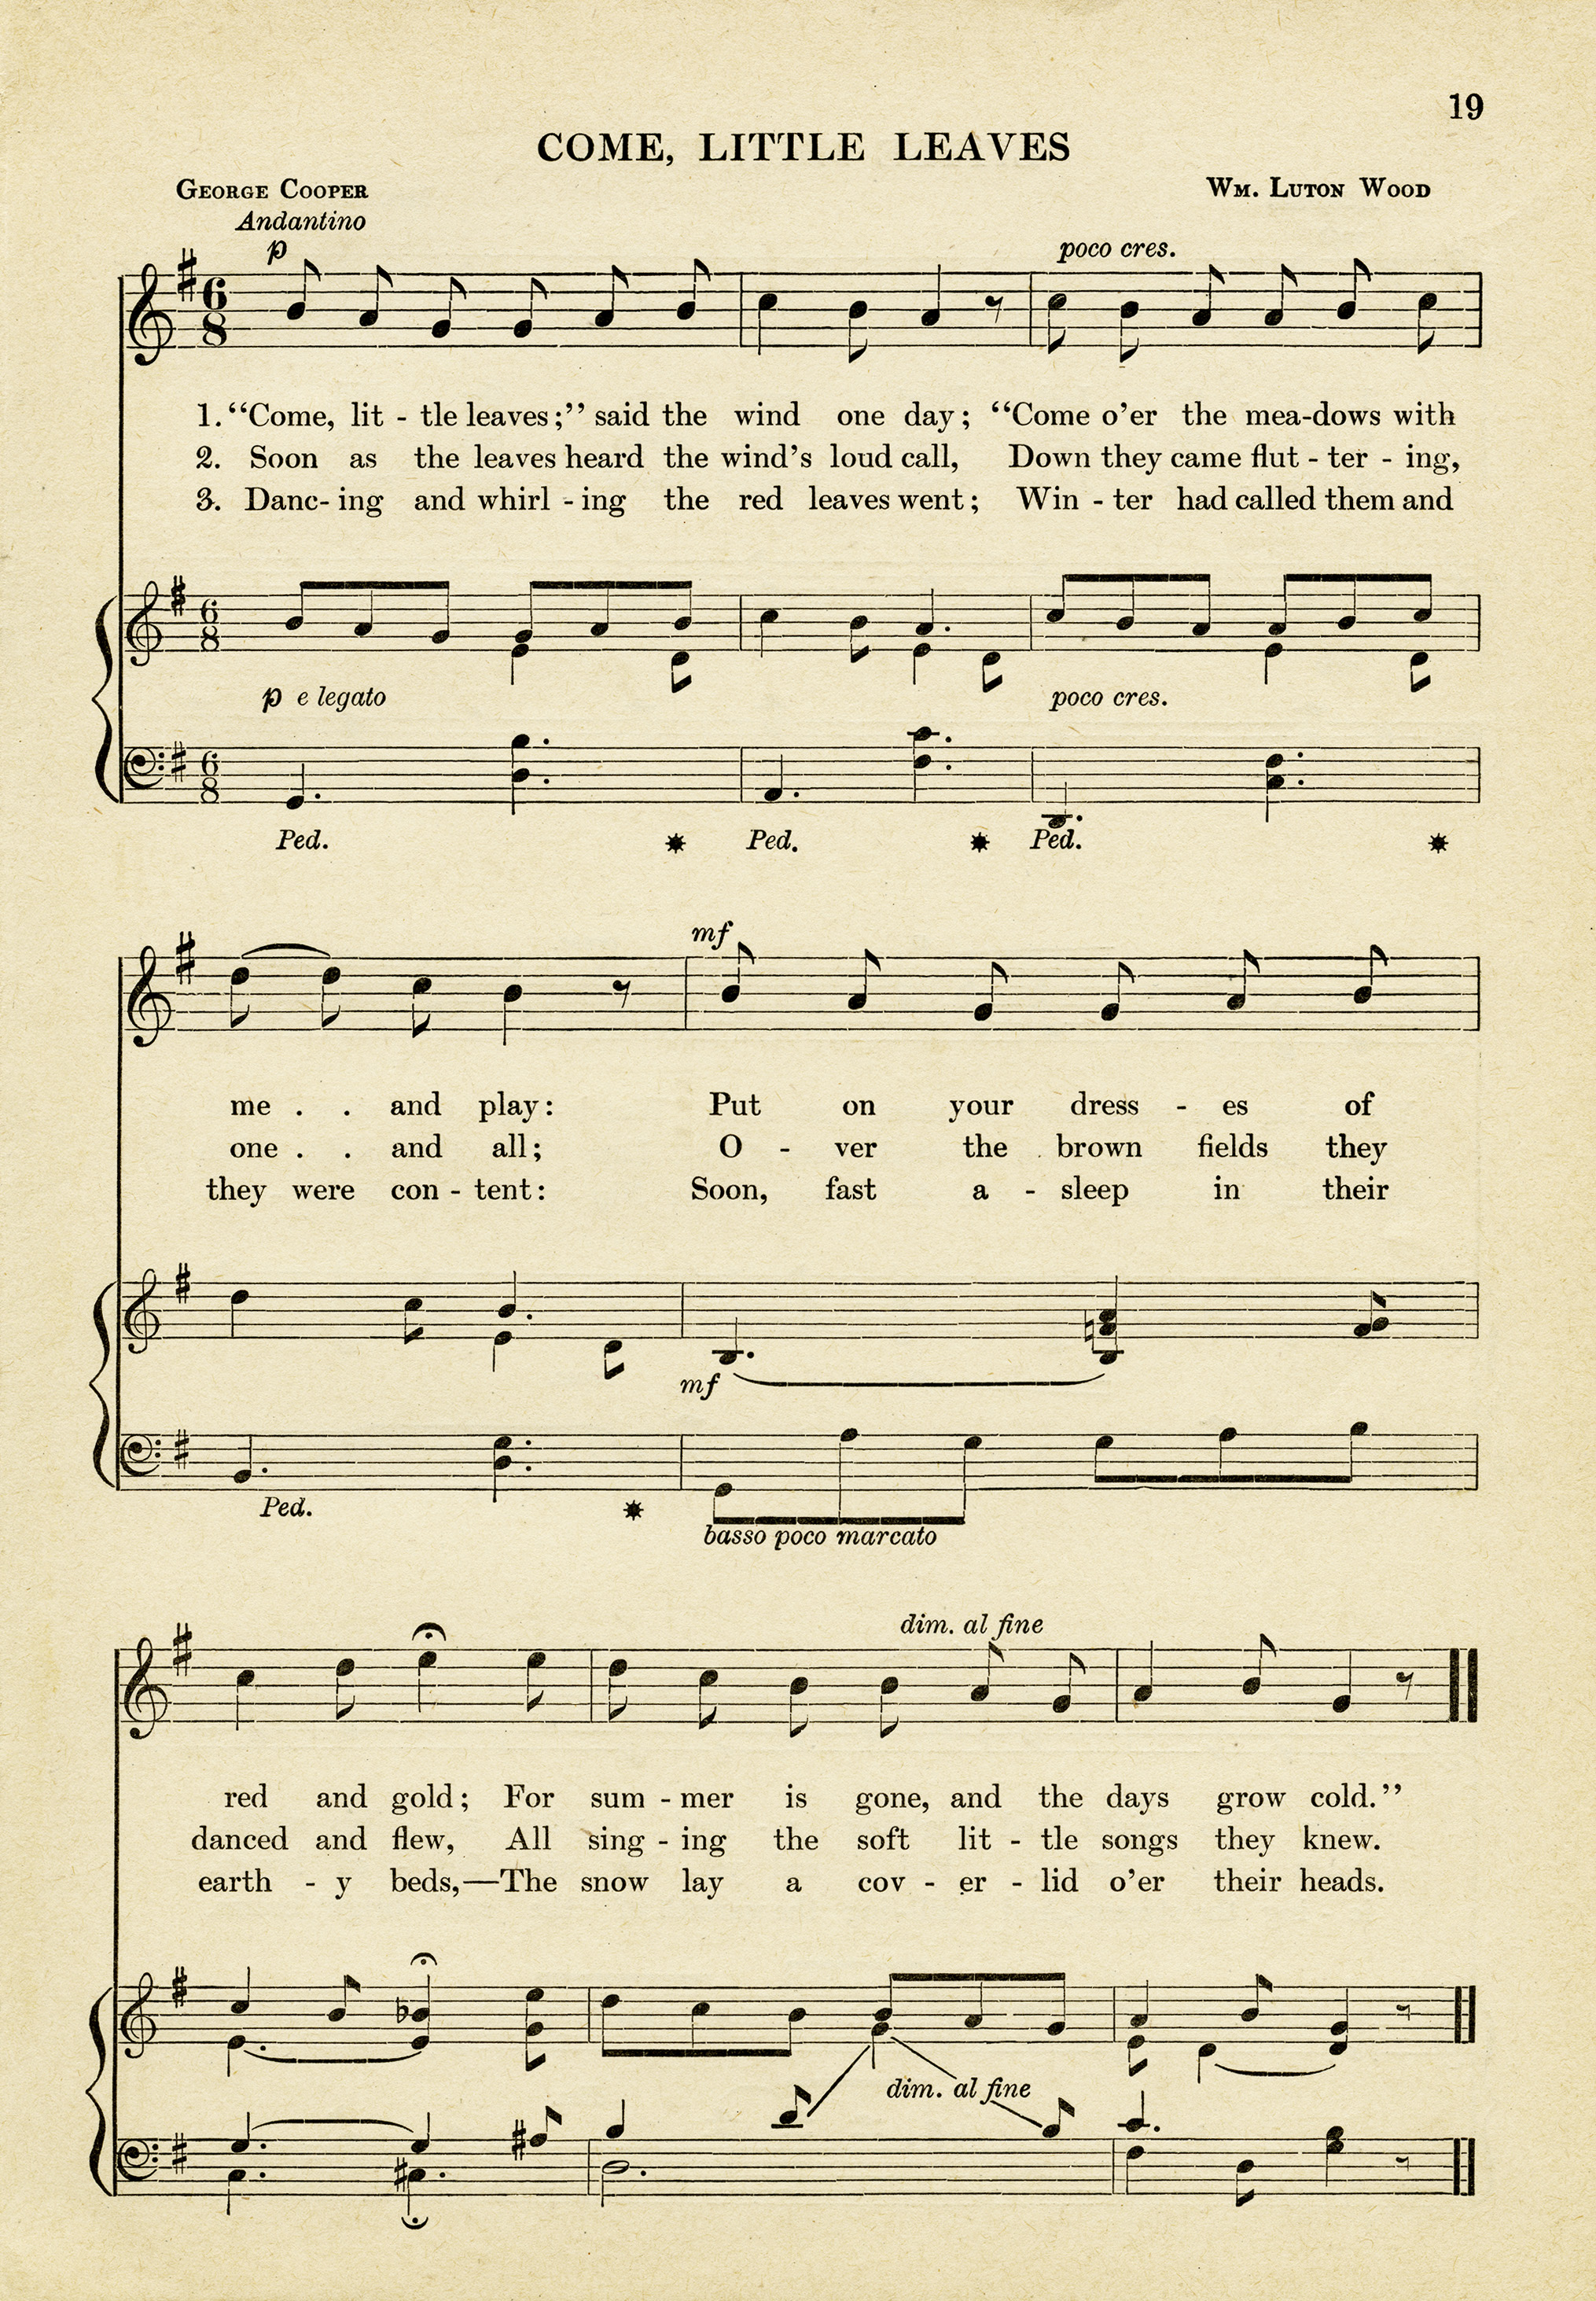 graphic regarding Free Printable Vintage Christmas Sheet Music named Arrive Minimal Leaves Sheet Songs ~ No cost Basic Graphic - Aged